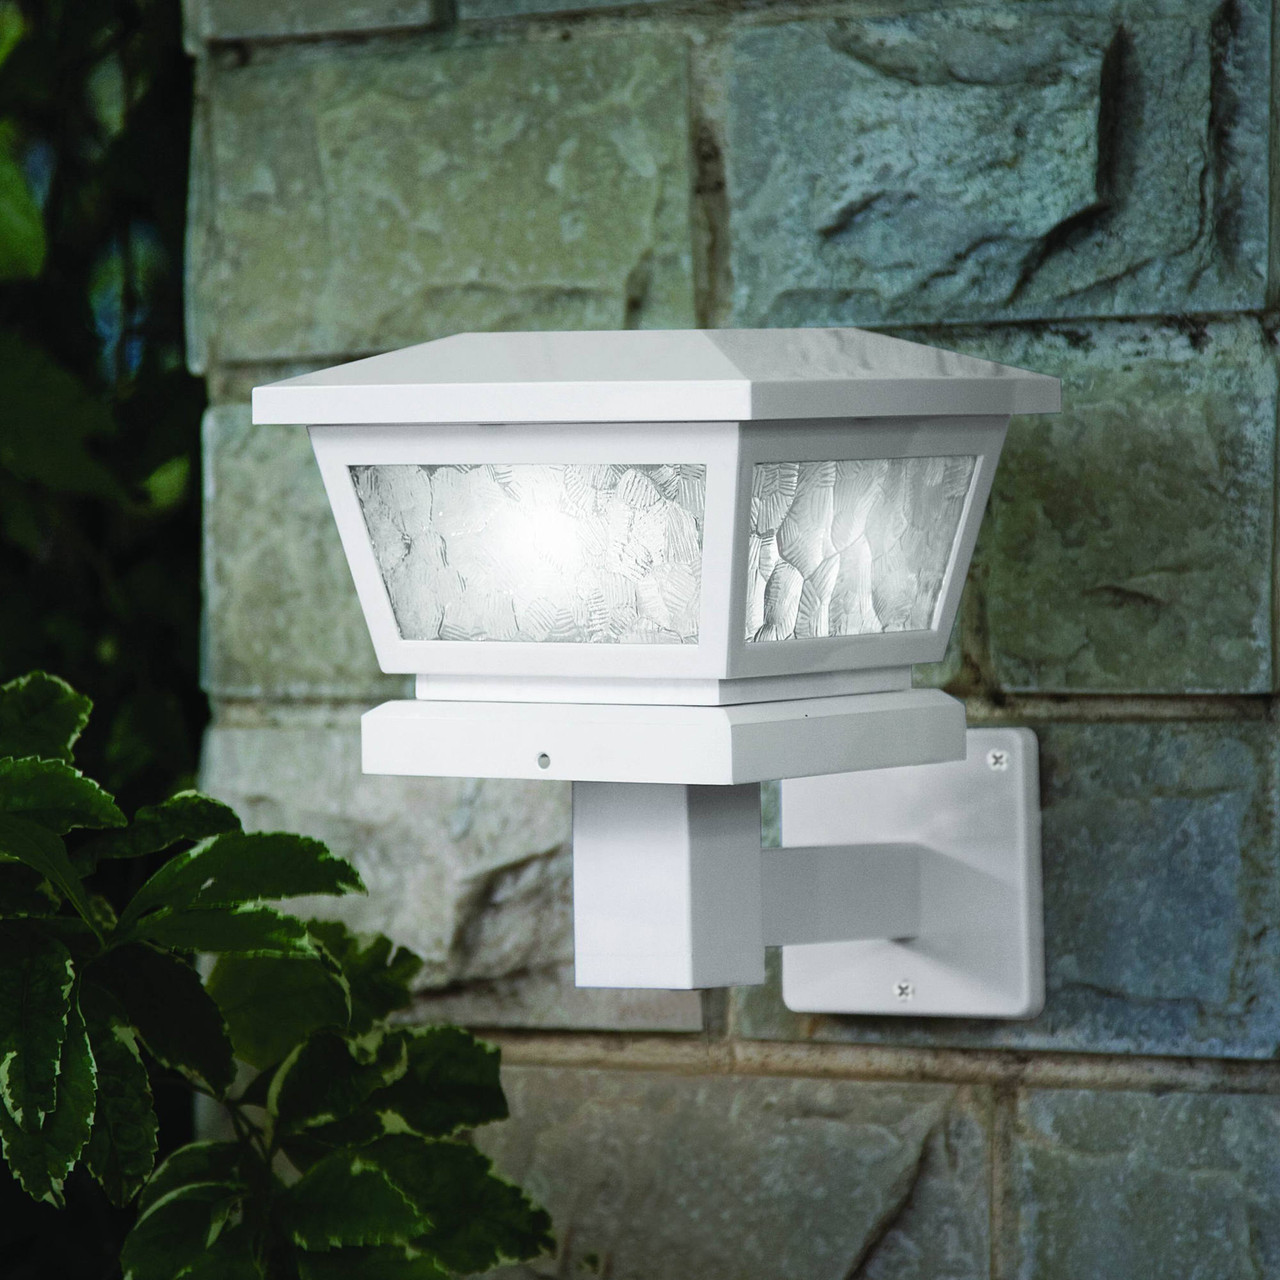 Classy Caps White Fairmont Solar Light Mounted on Stone Wall